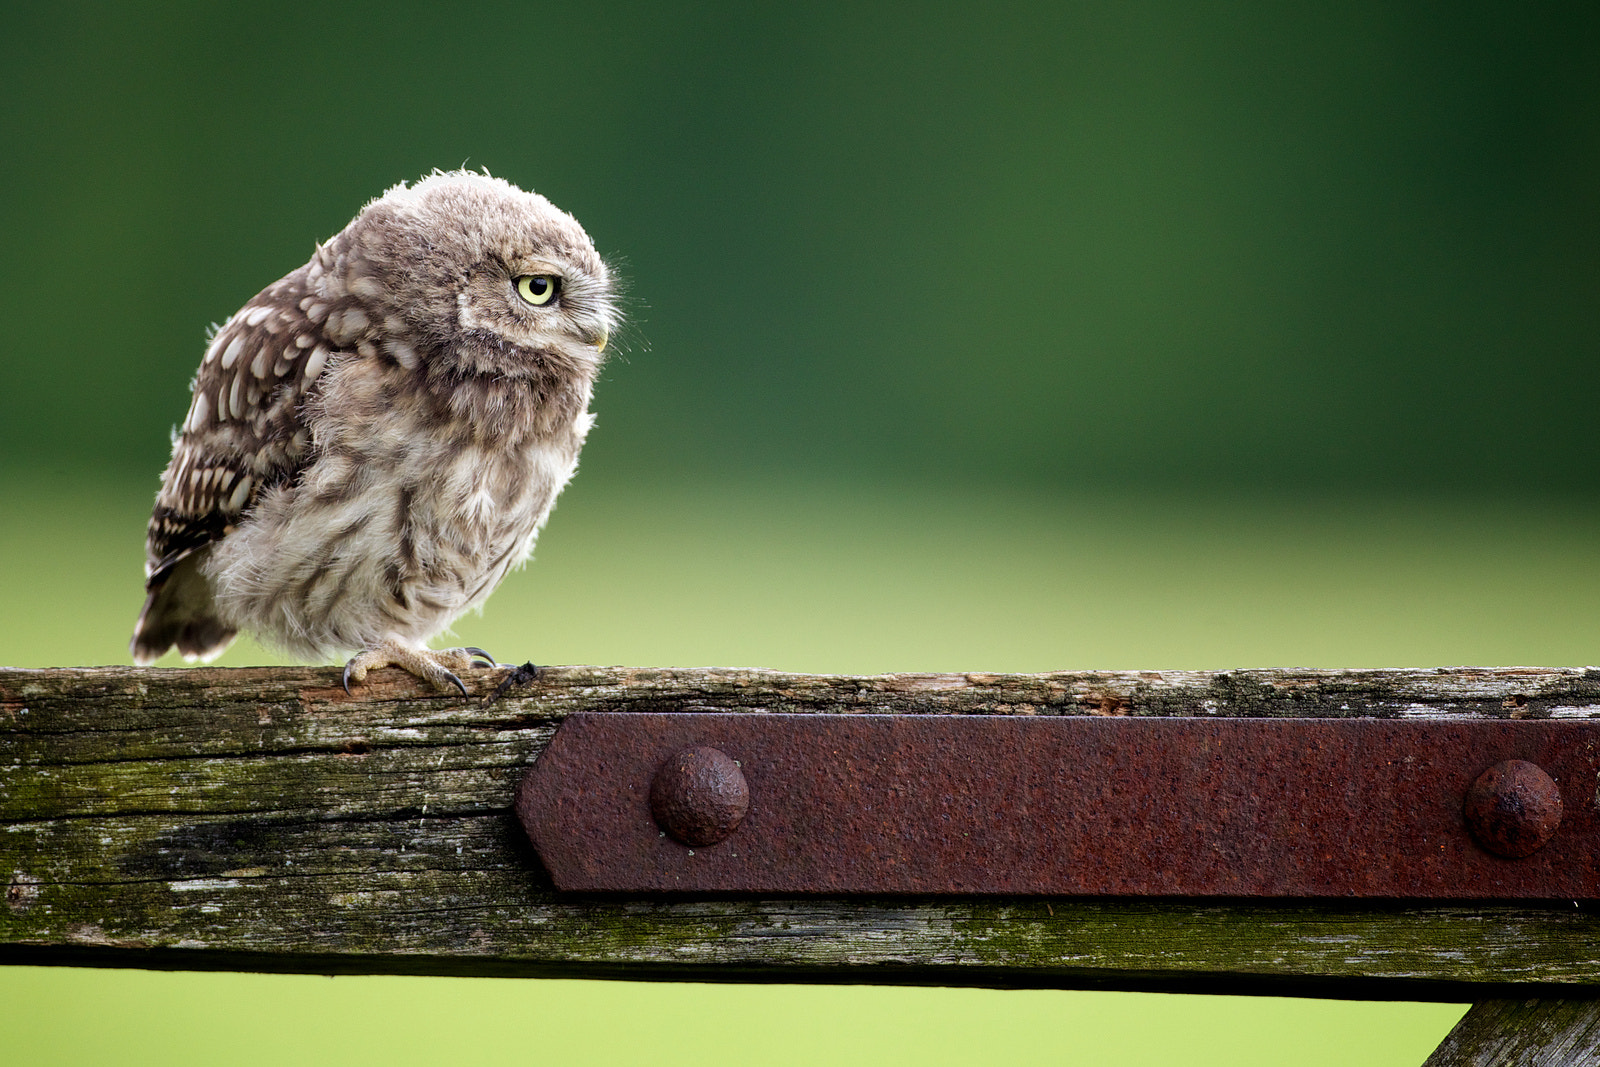 Photograph fuzzy by Mark Bridger on 500px